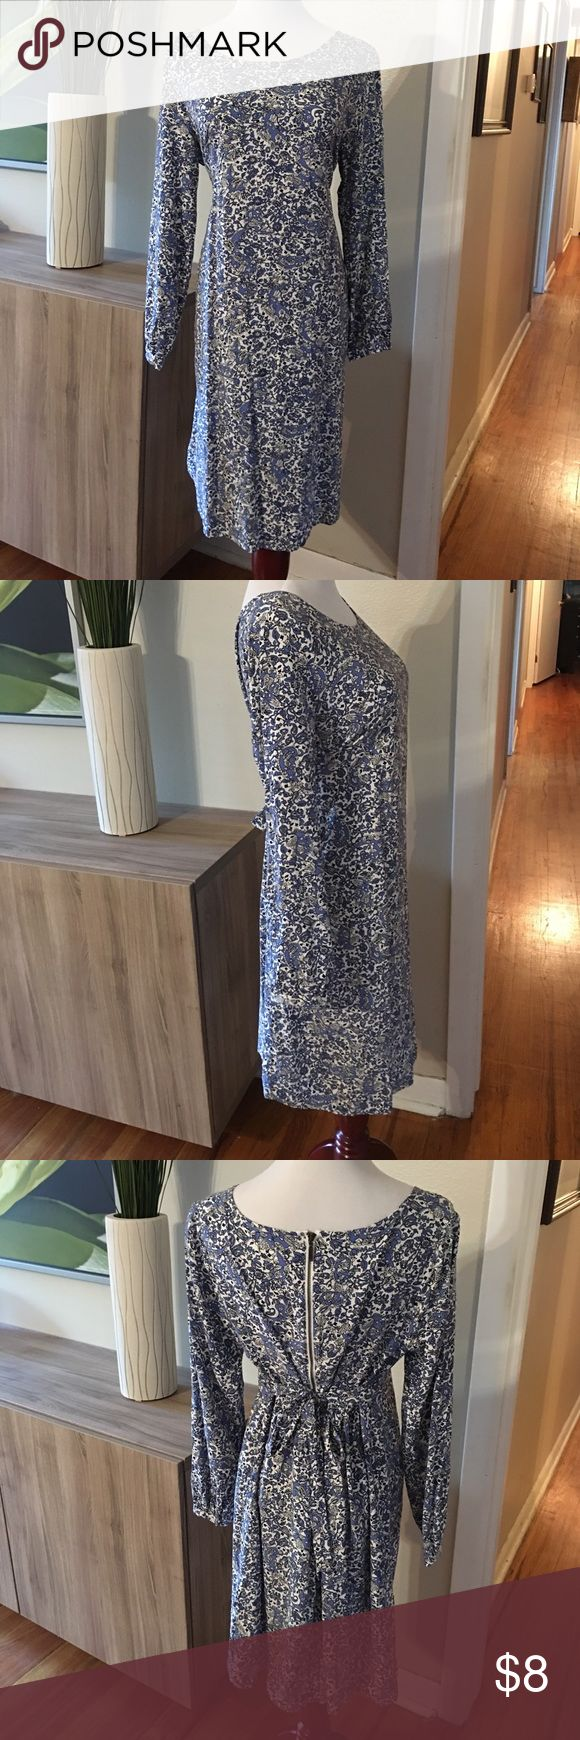 Old Navy maternity dress size medium Old Navy maternity dress size medium. This dress has a button at the end of the long sleeve. Very light and airy. Has a zipper and ties on the back to show off your growing bump. Old Navy Dresses